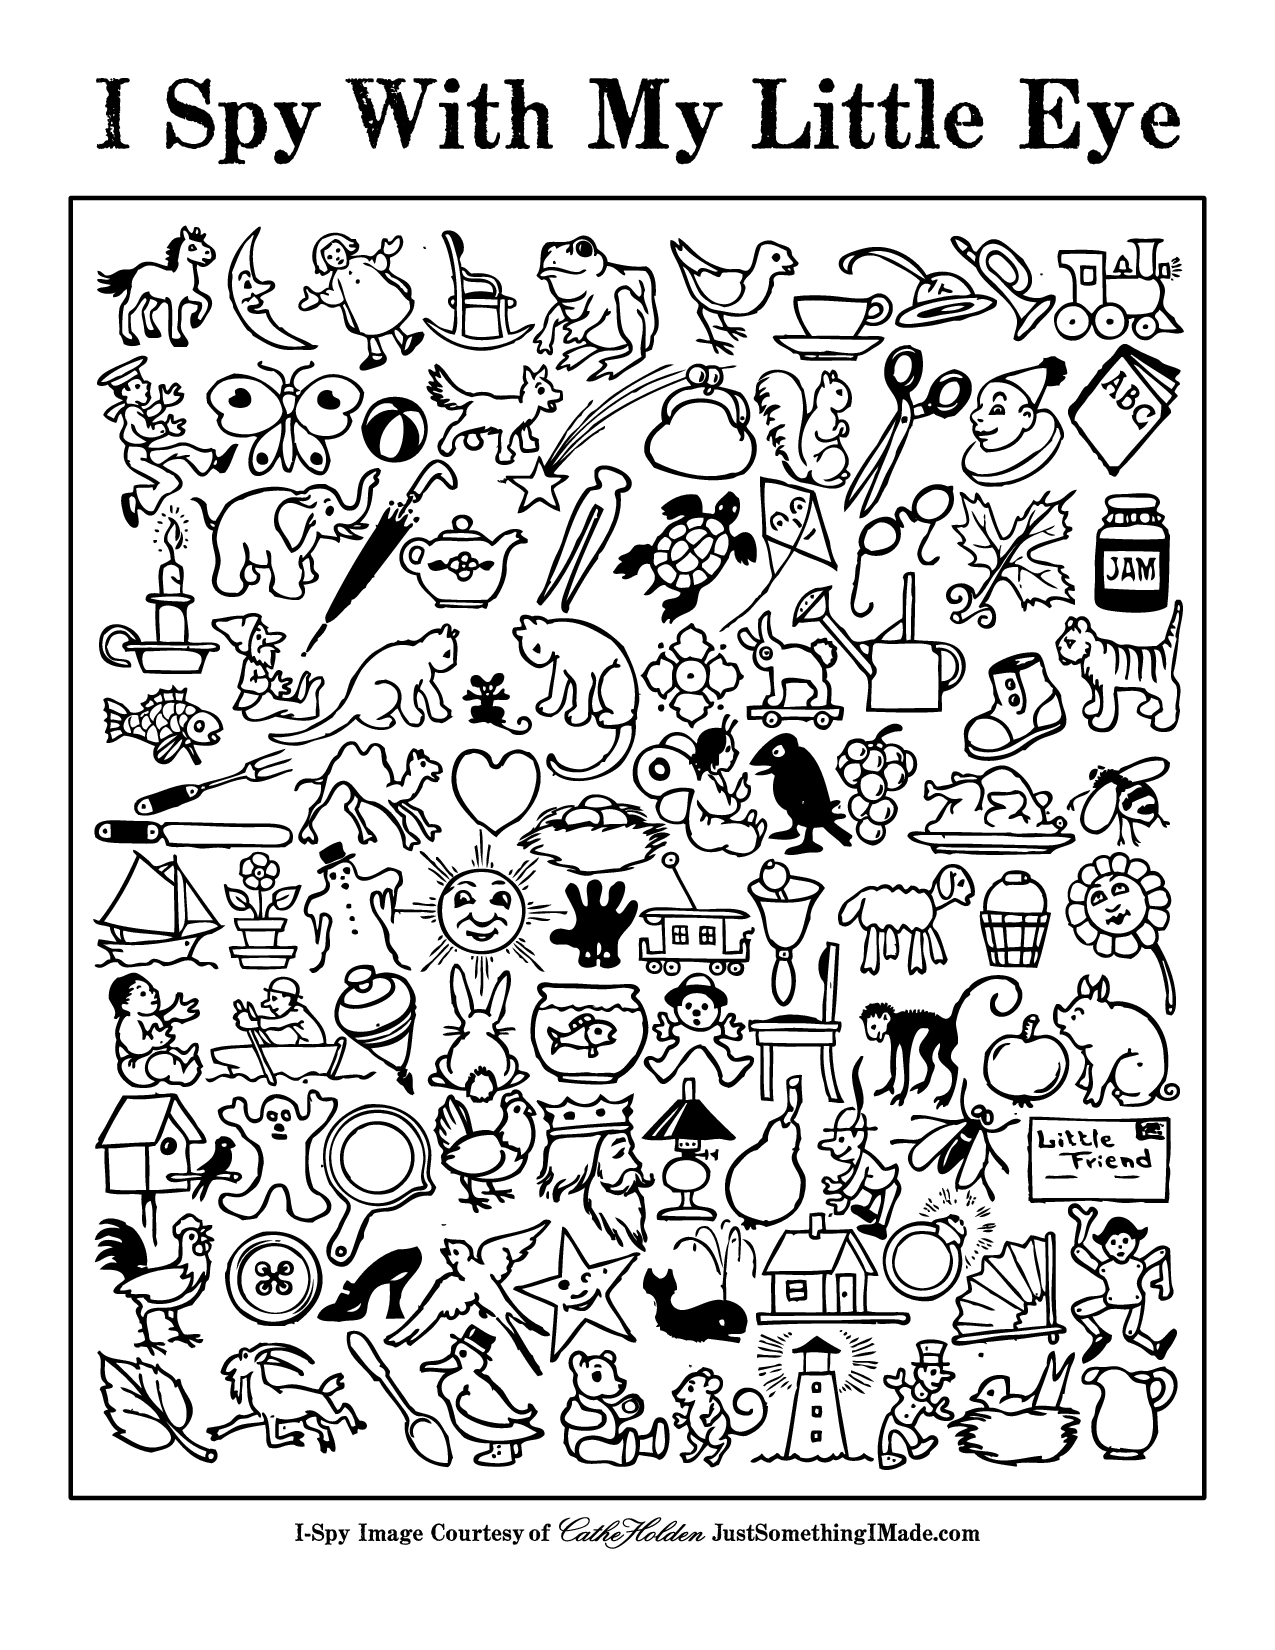 I spy, Coloring pages, Teaching